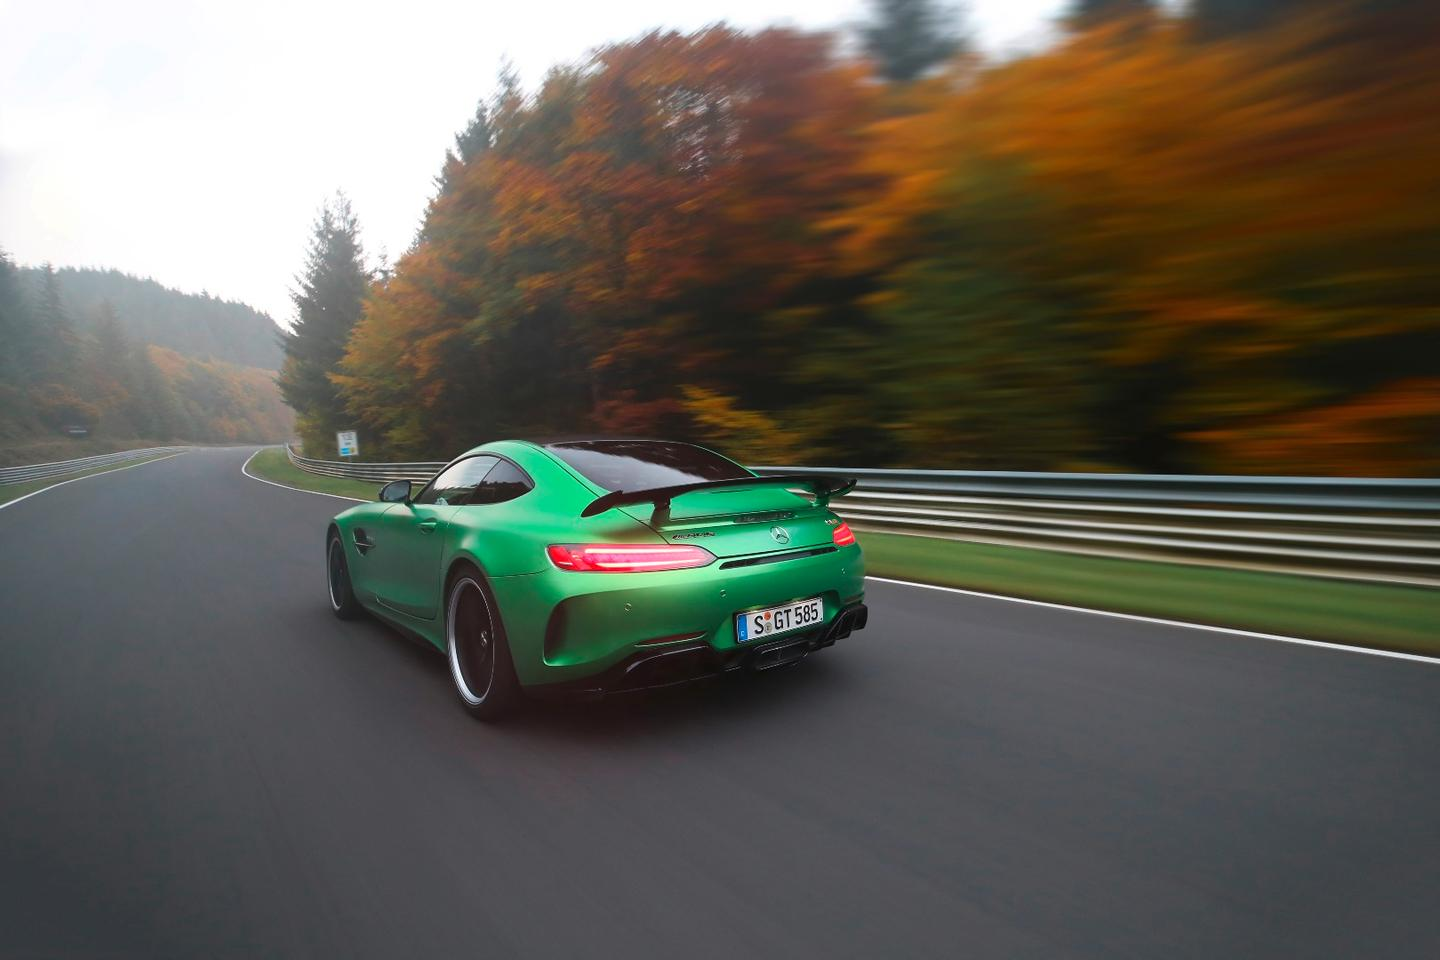 The AMG GT R makes its way around the Nordschleife